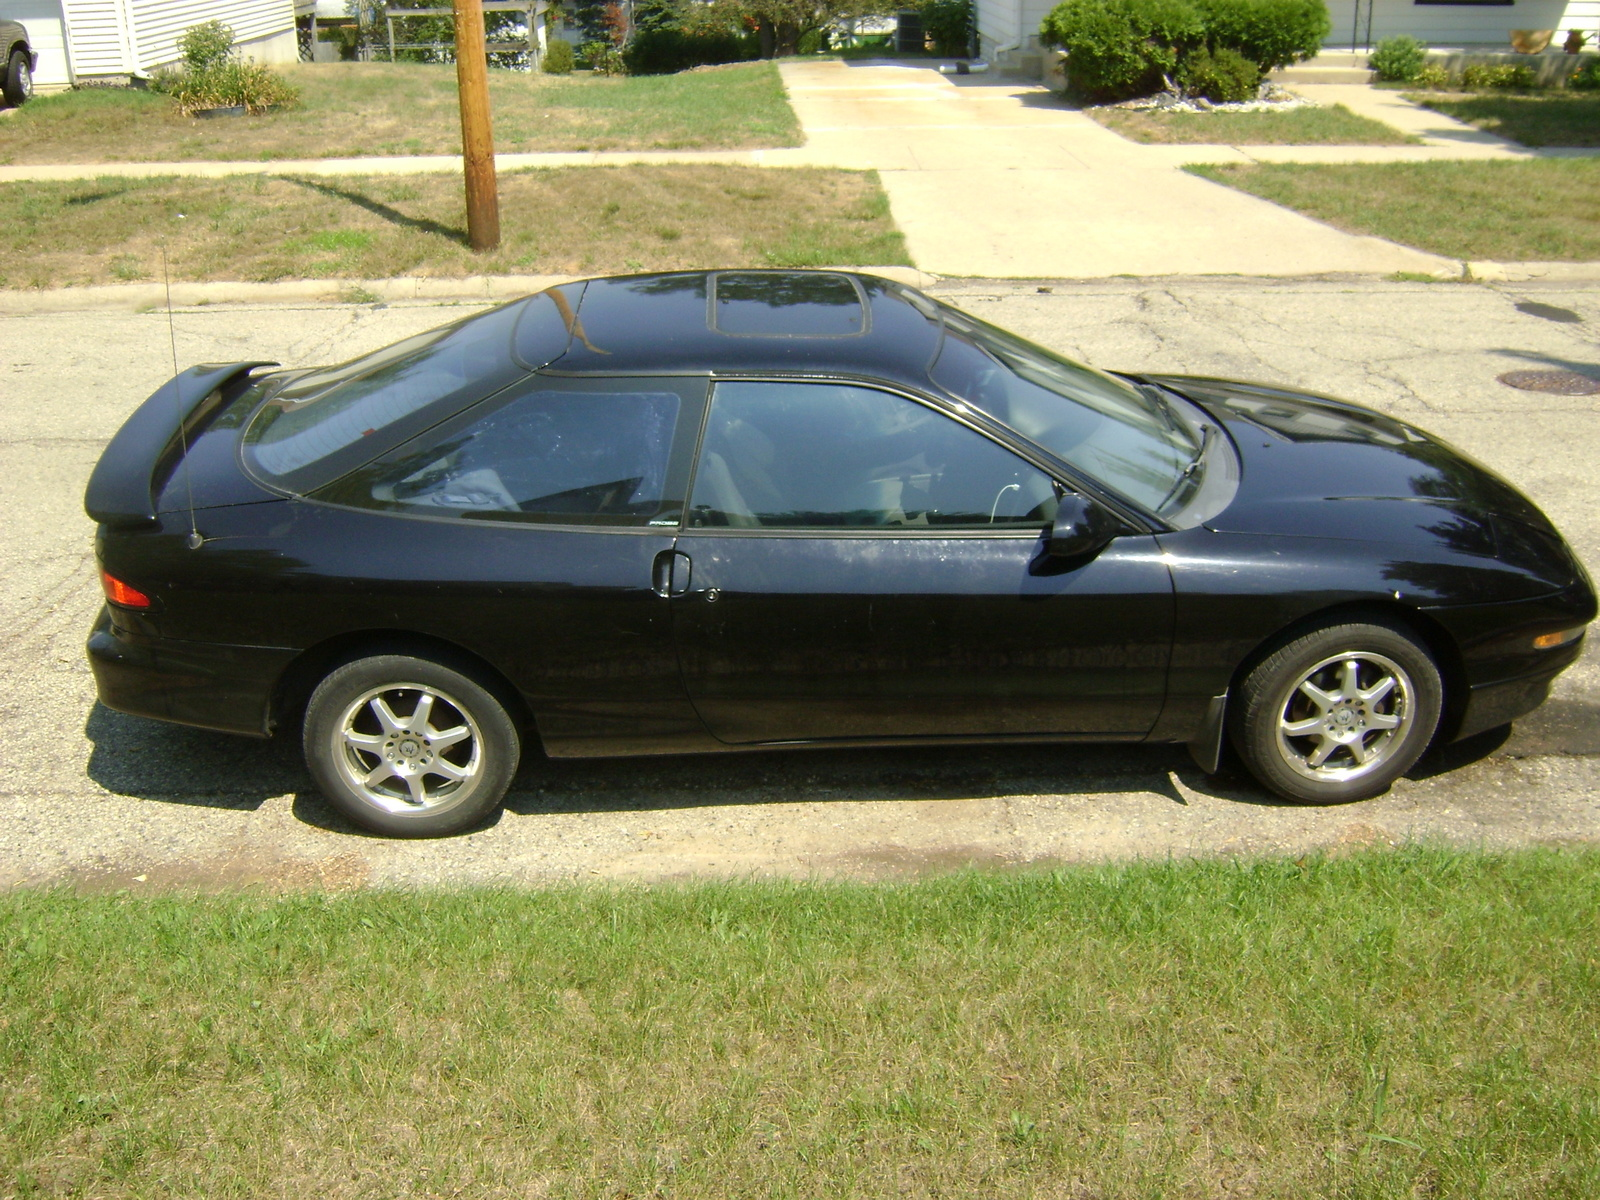 Ford Probe #1